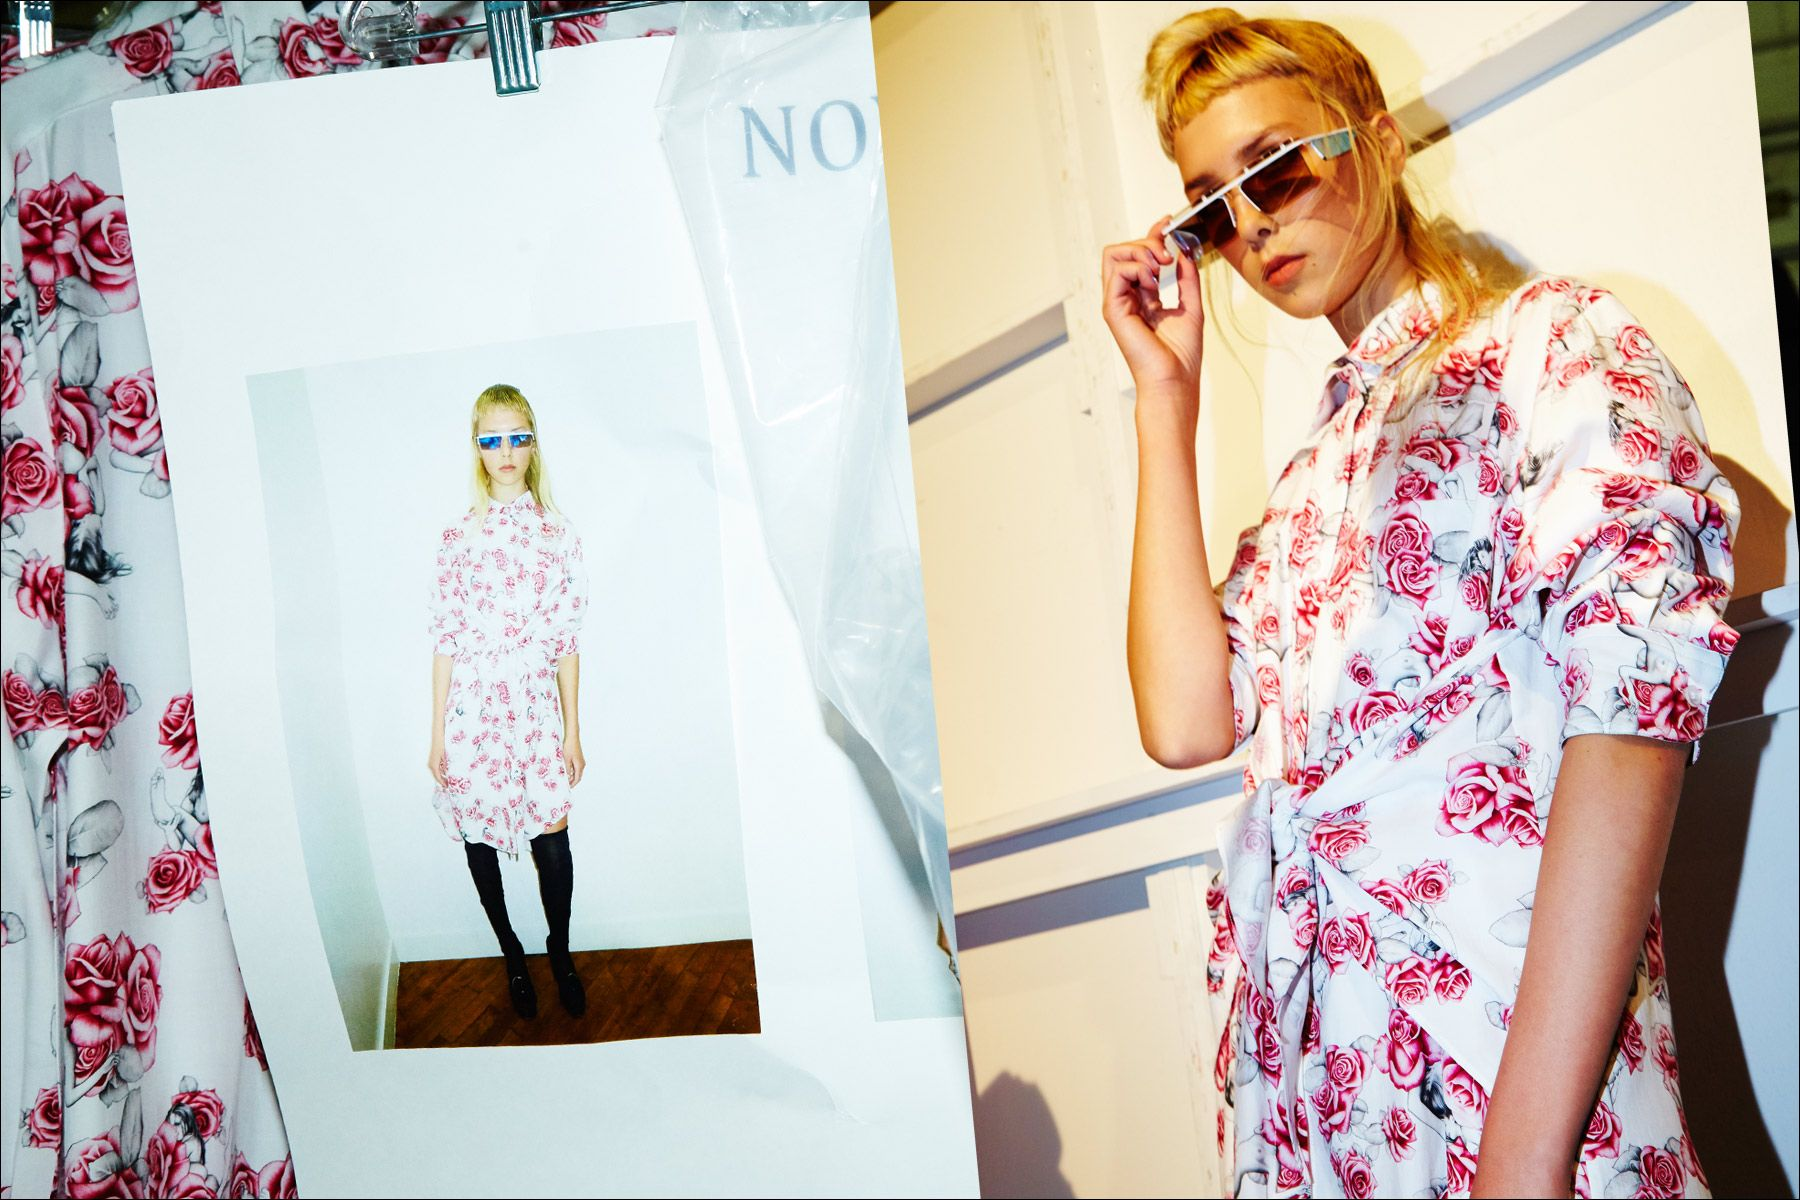 A model wears square cut sunglasses and rose print dress, backstage at the Adam Selman Fall 2017 womenswear show. Photographed by Alexander Thompson for Ponyboy magazine NY.